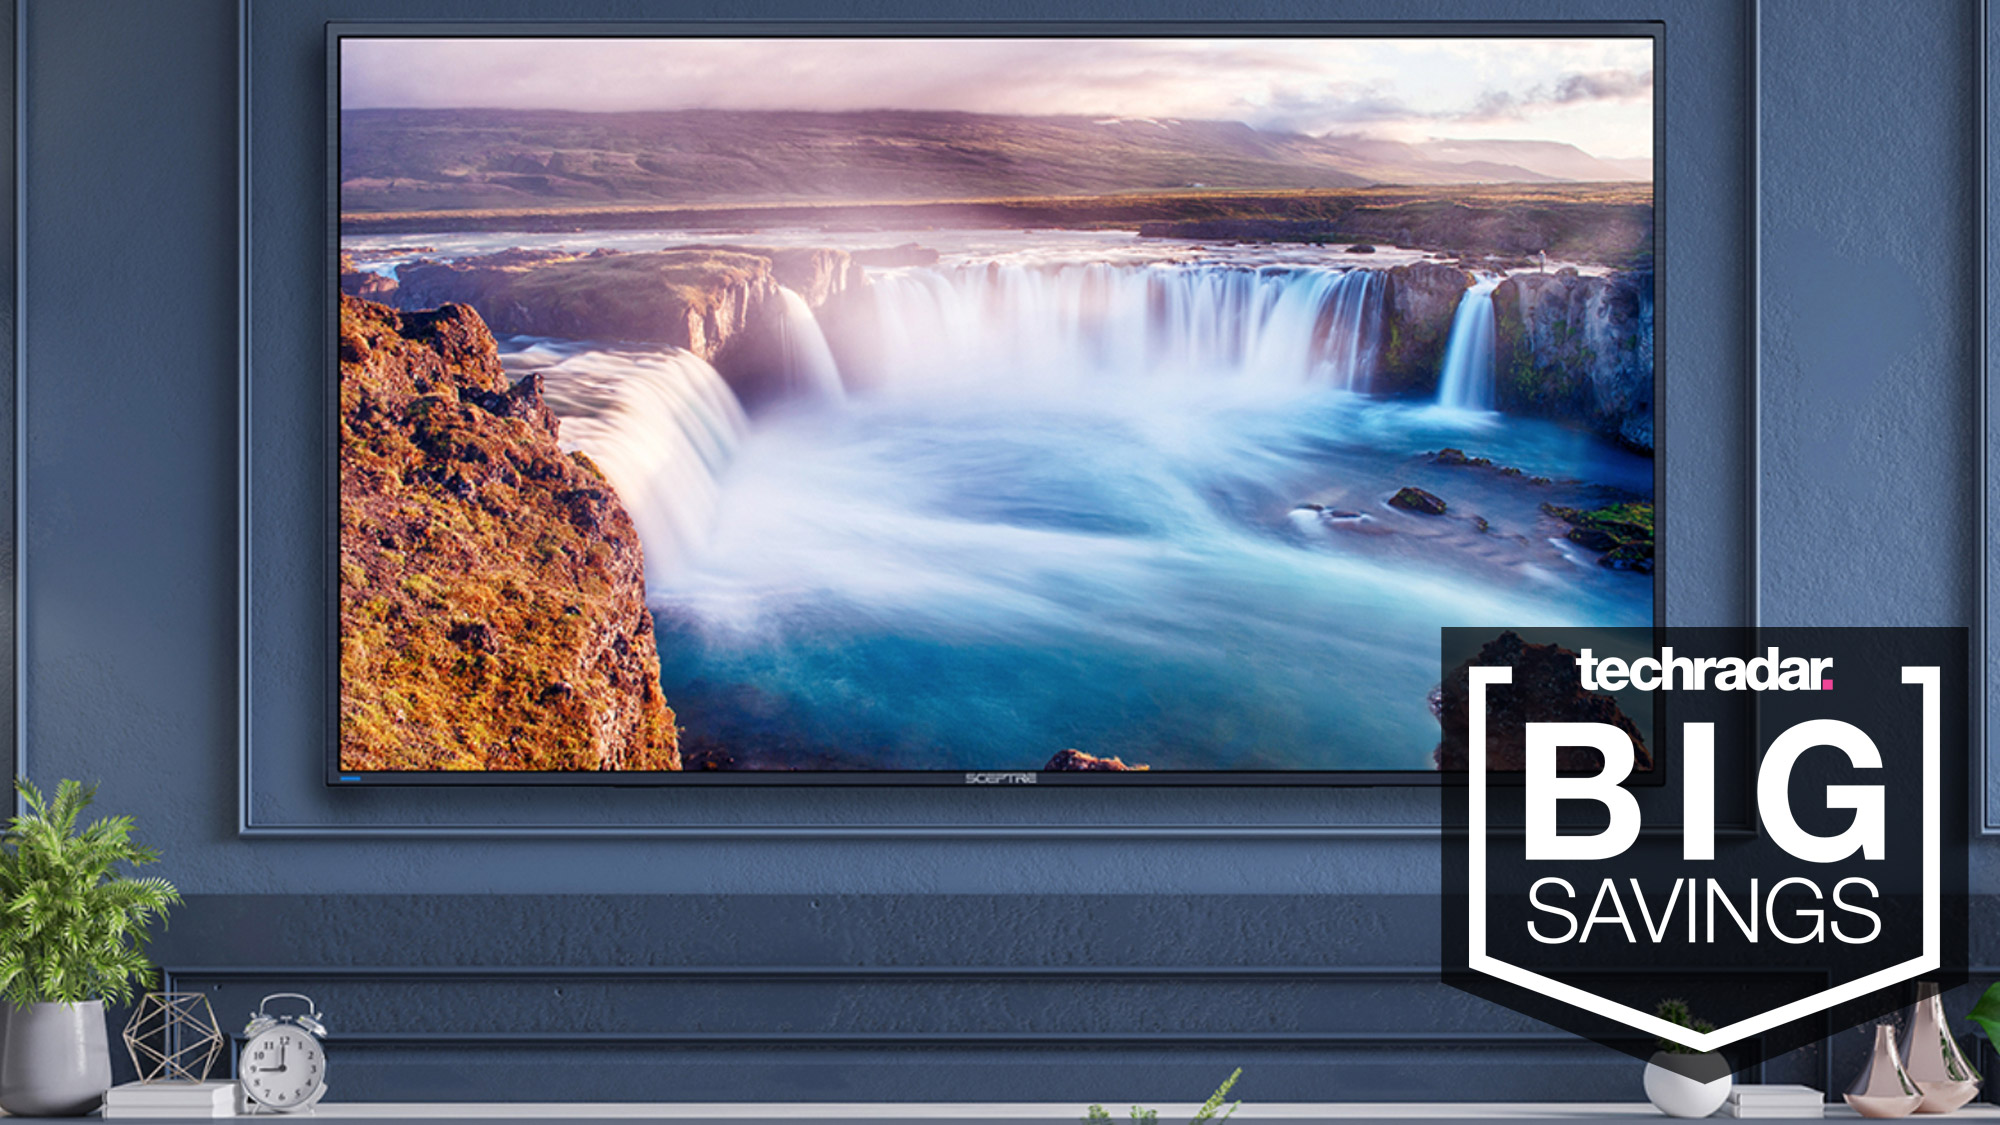 Cheap TV deals at Walmart: save up to $700 on Samsung, LG, Sceptre, and more